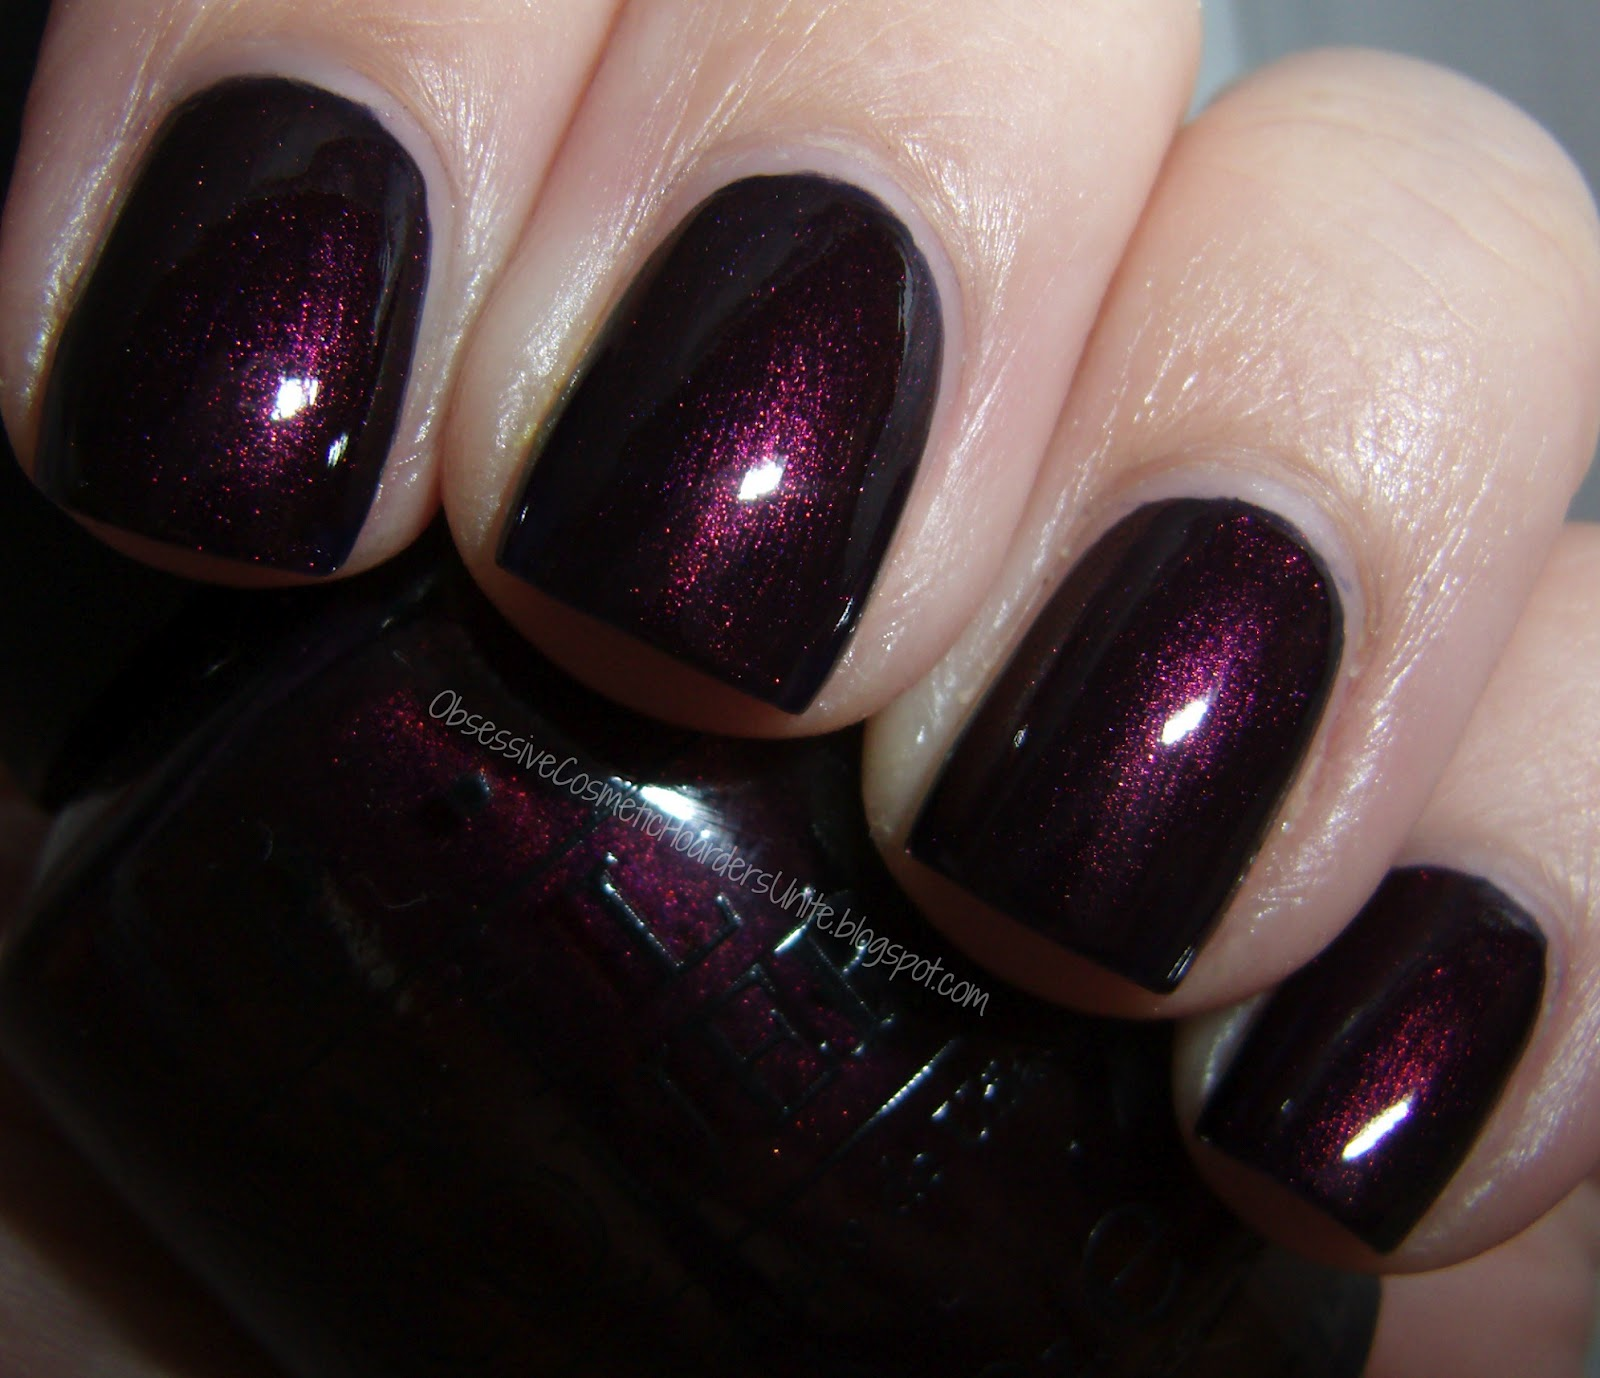 430e64c574212 Obsessive Cosmetic Hoarders Unite!  OPI Germany Collection .